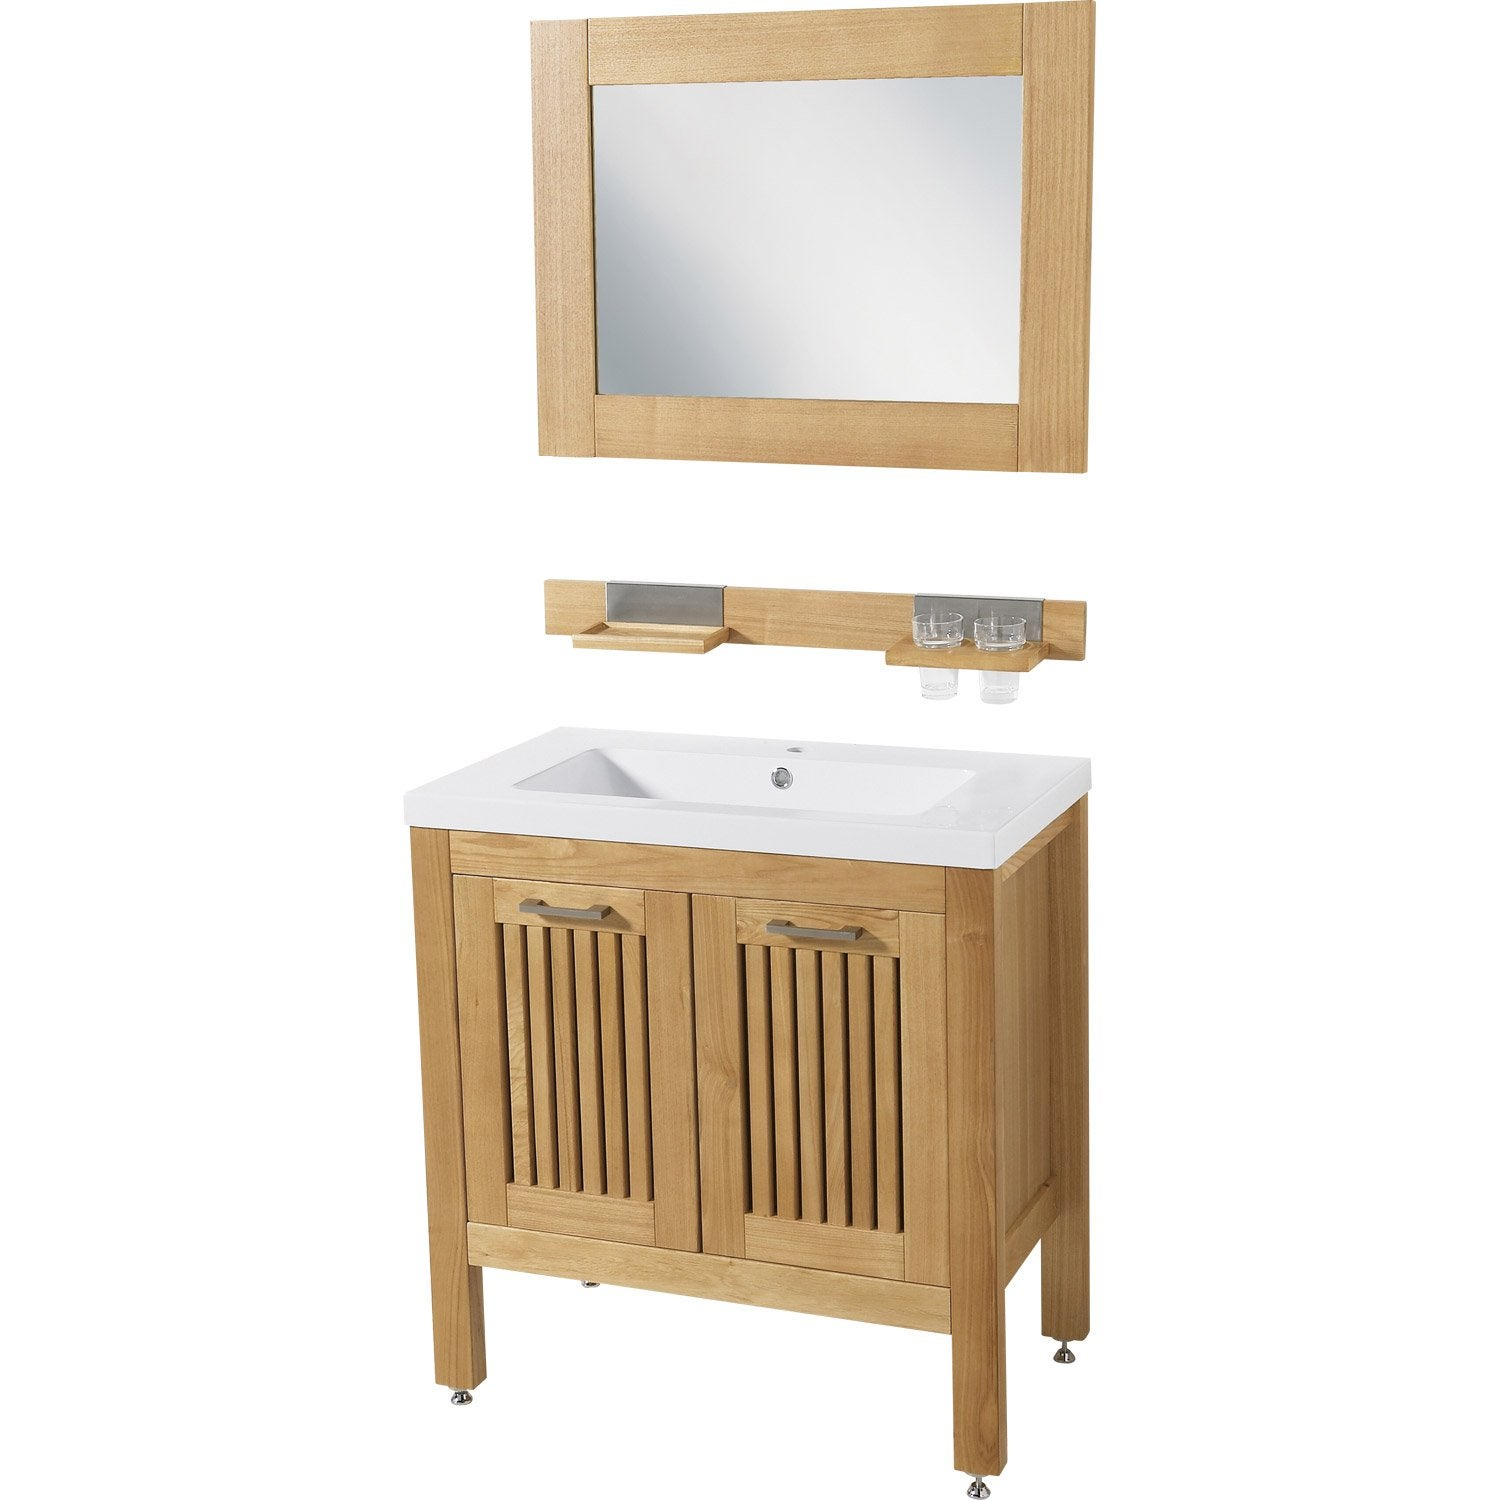 Mobilier table leroy merlin meuble sous lavabo for Sous lavabo leroy merlin